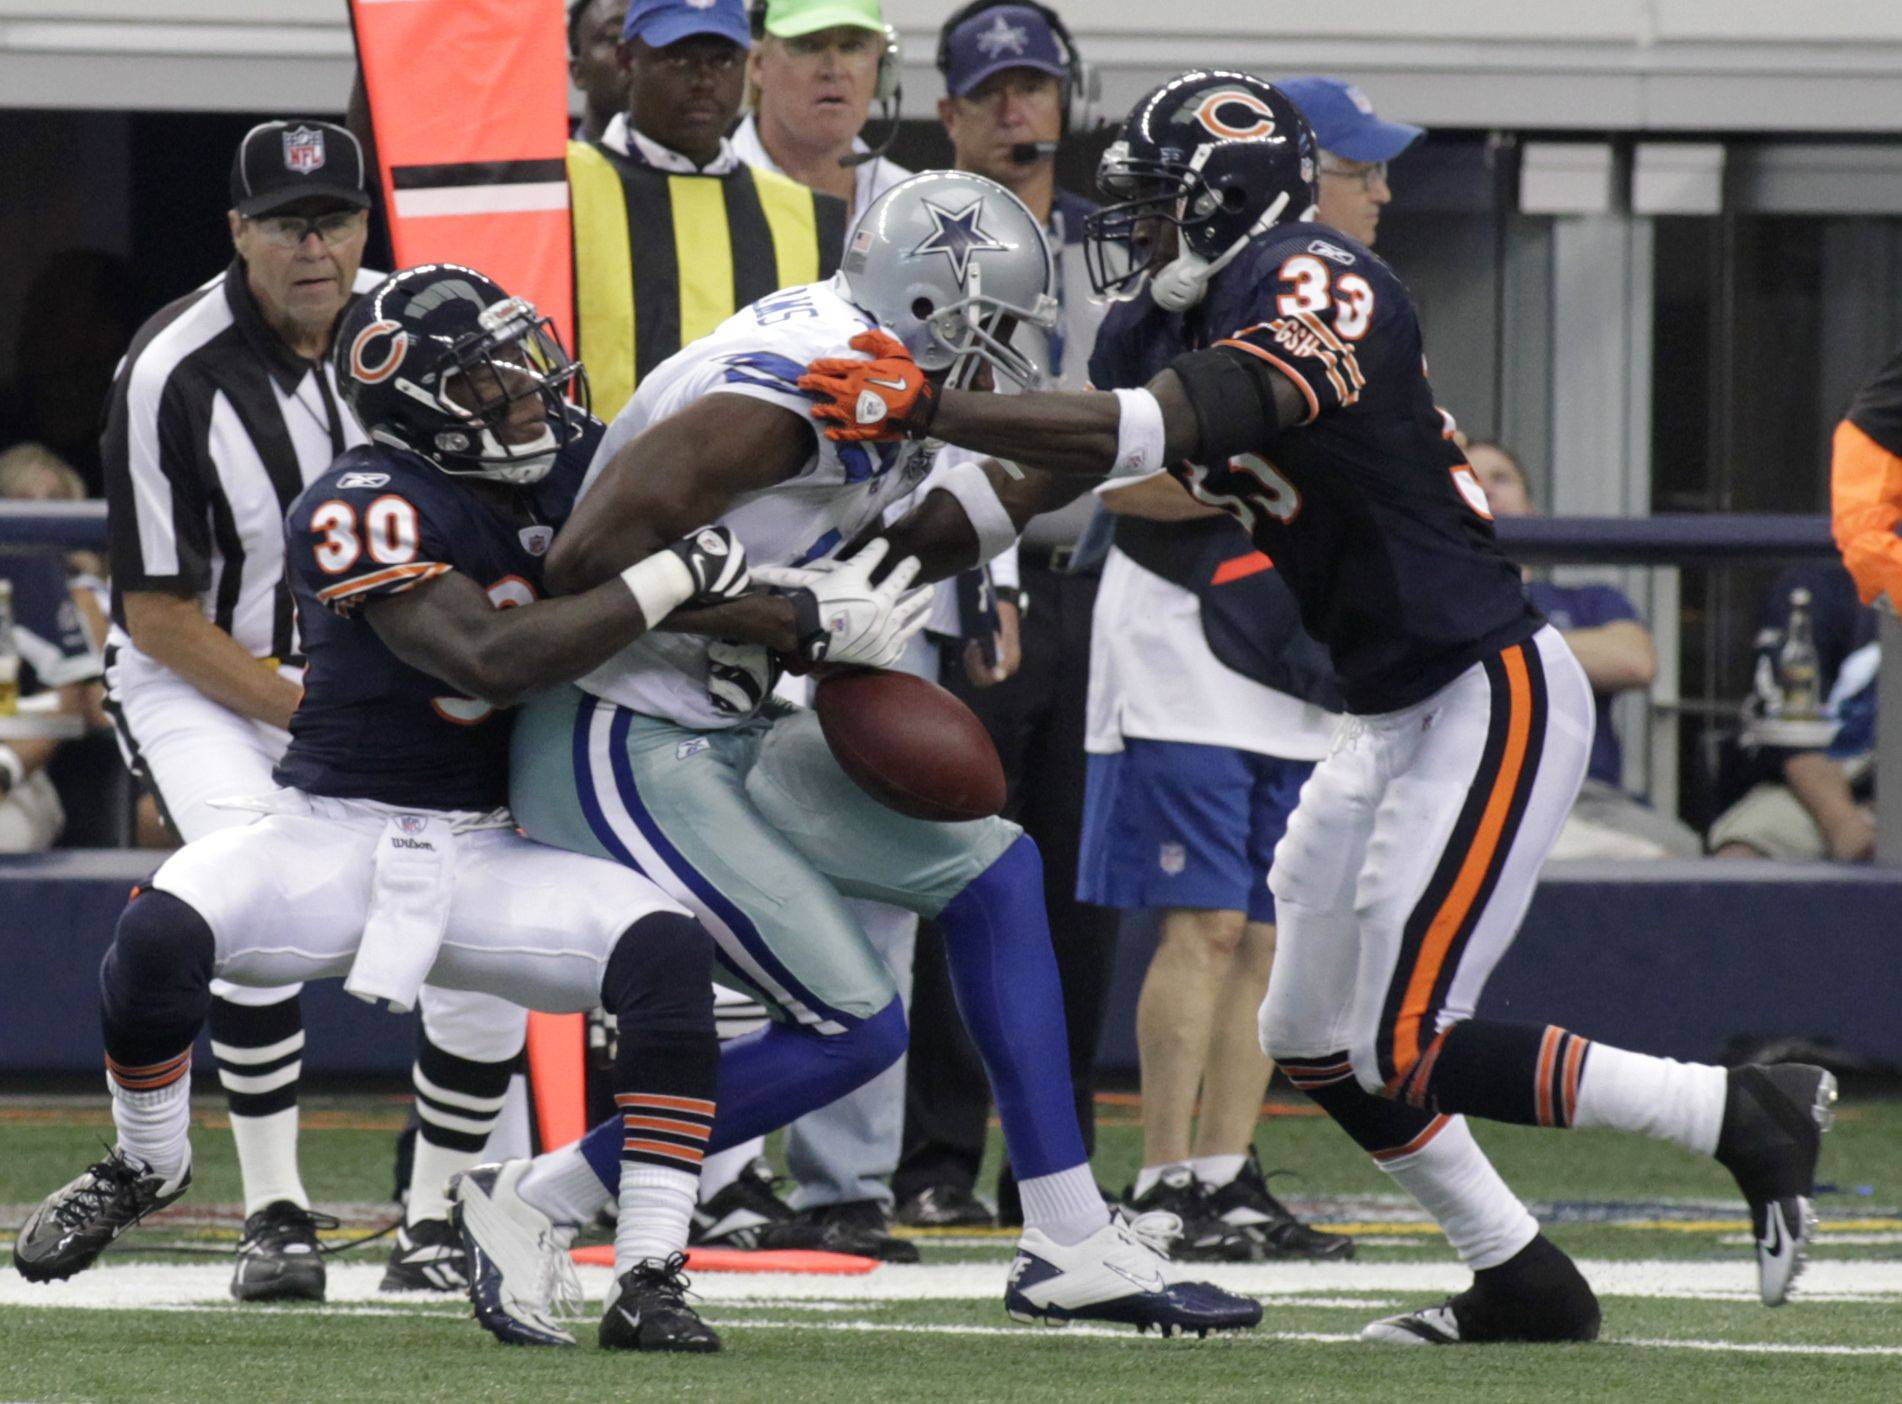 Chicago Bears cornerbacks D.J. Moore (30) and Charles Tillman (33) strip the ball from Dallas Cowboys wide receiver Roy E. Williams (11) late in an NFL football game, Sunday, Sept. 19, 2010, in Arlington, Texas. The Bears recovered the ball on the way to a 27-20 win.